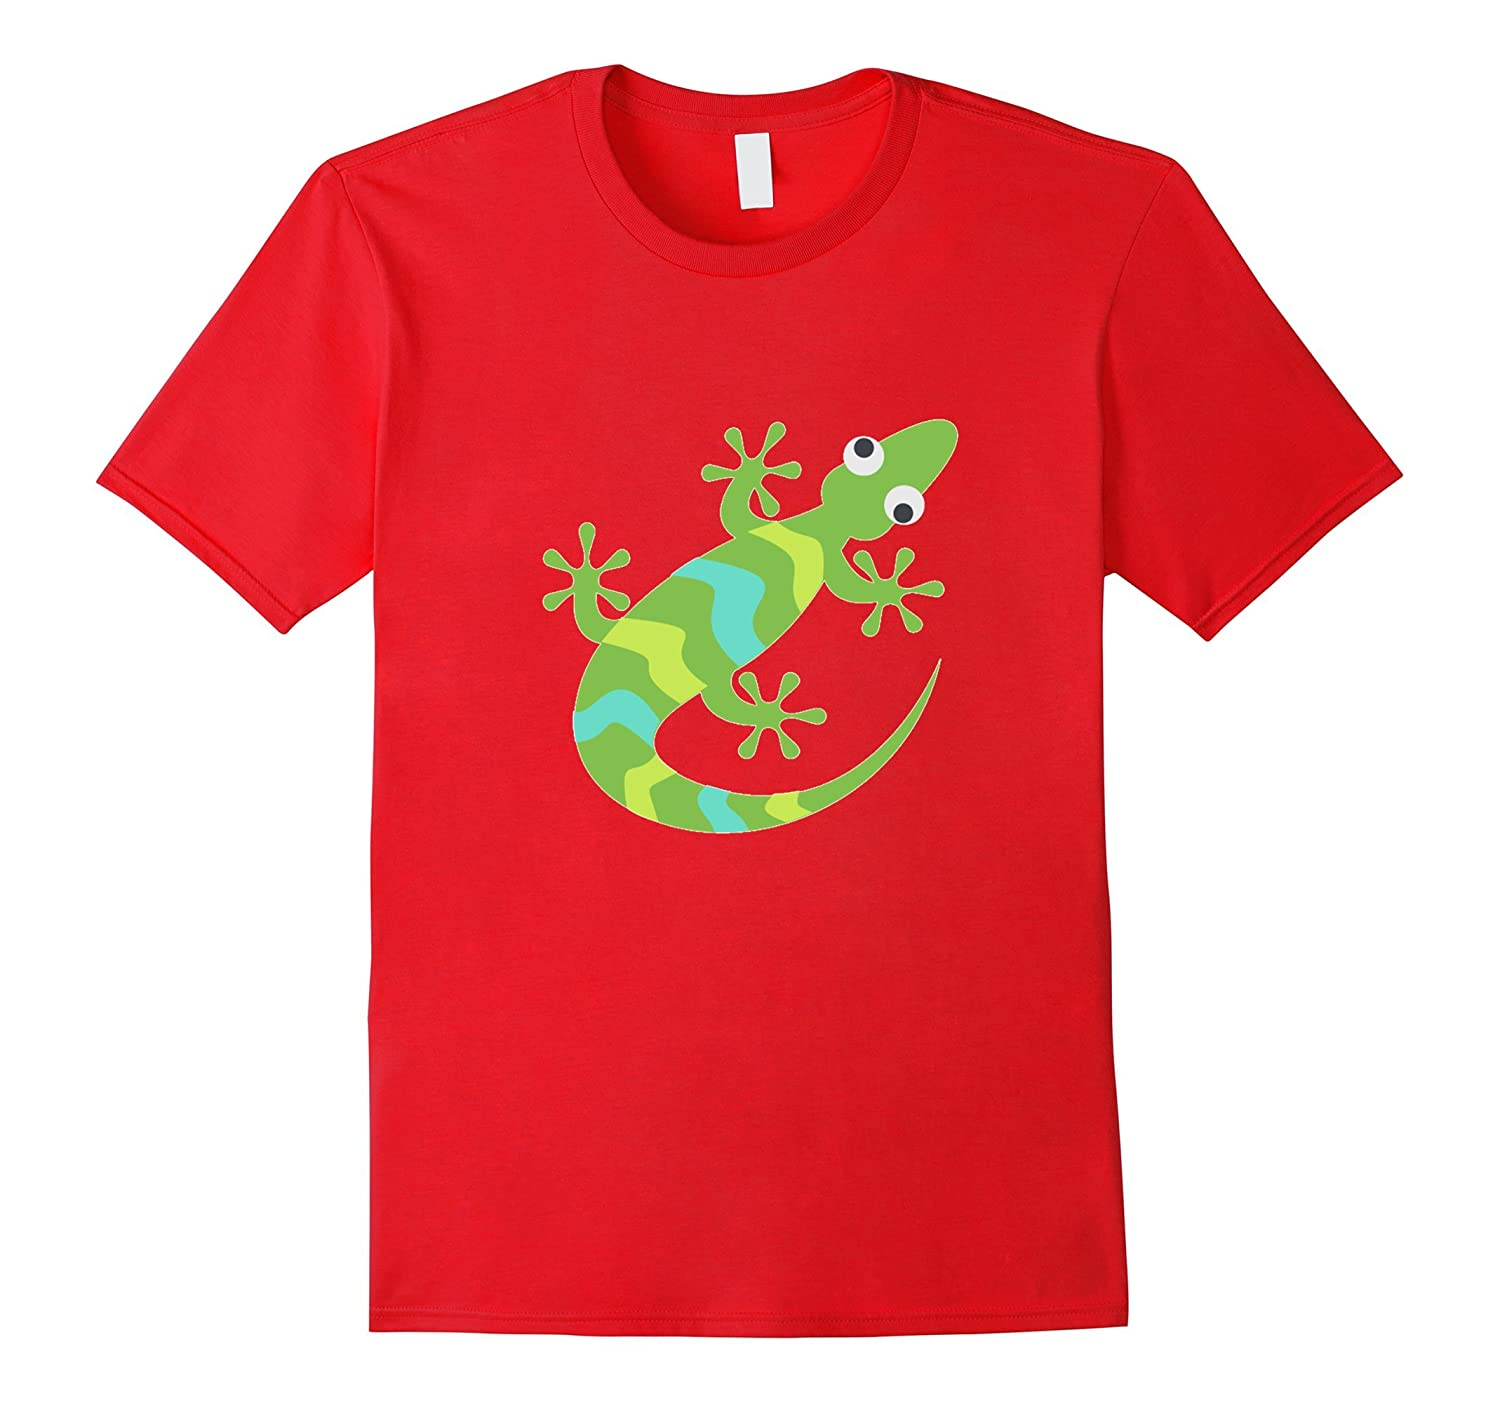 Lizard Emoji T-Shirt Iguana Nature Reptile Animal Camouflage-TH